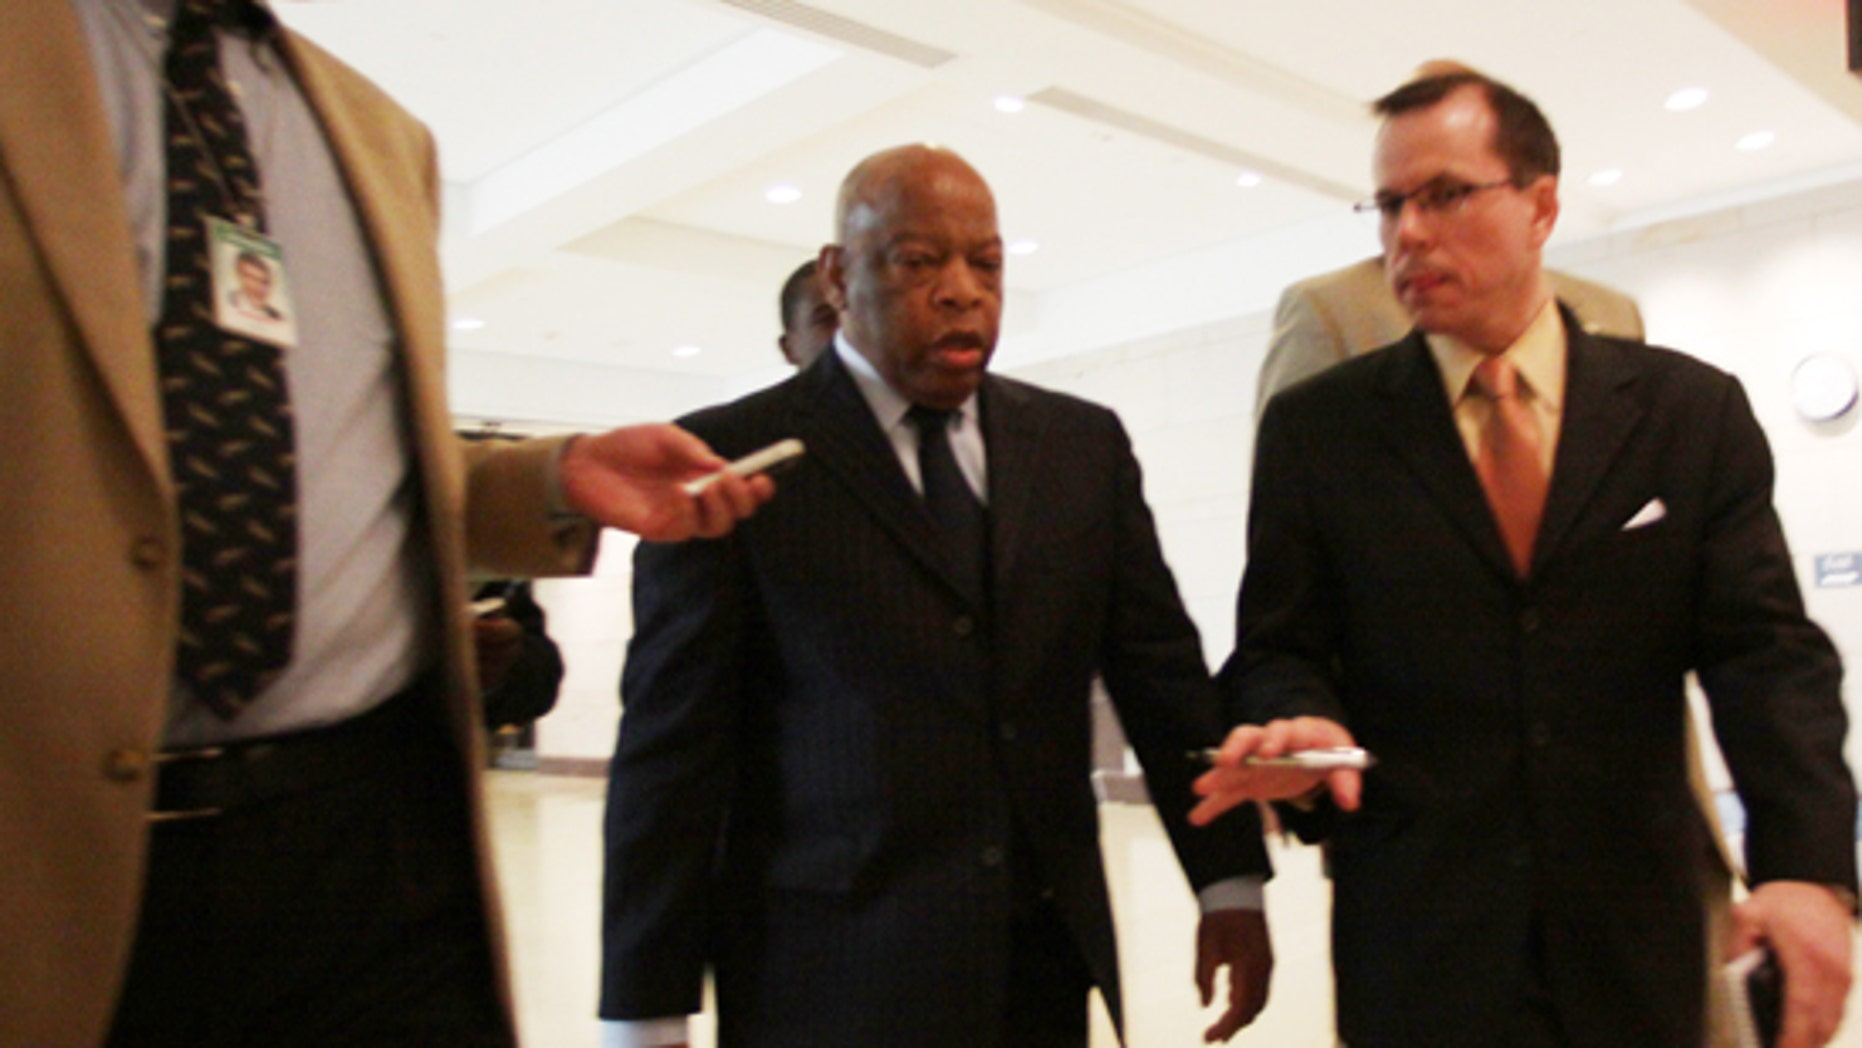 Rep. John Lewis, D-Ga., is questioned by reporters about an incident involving Tea Party demonstrators as he leaves a speech by President Obama to House Democrats on Saturday, March 20, 2010. (AP)